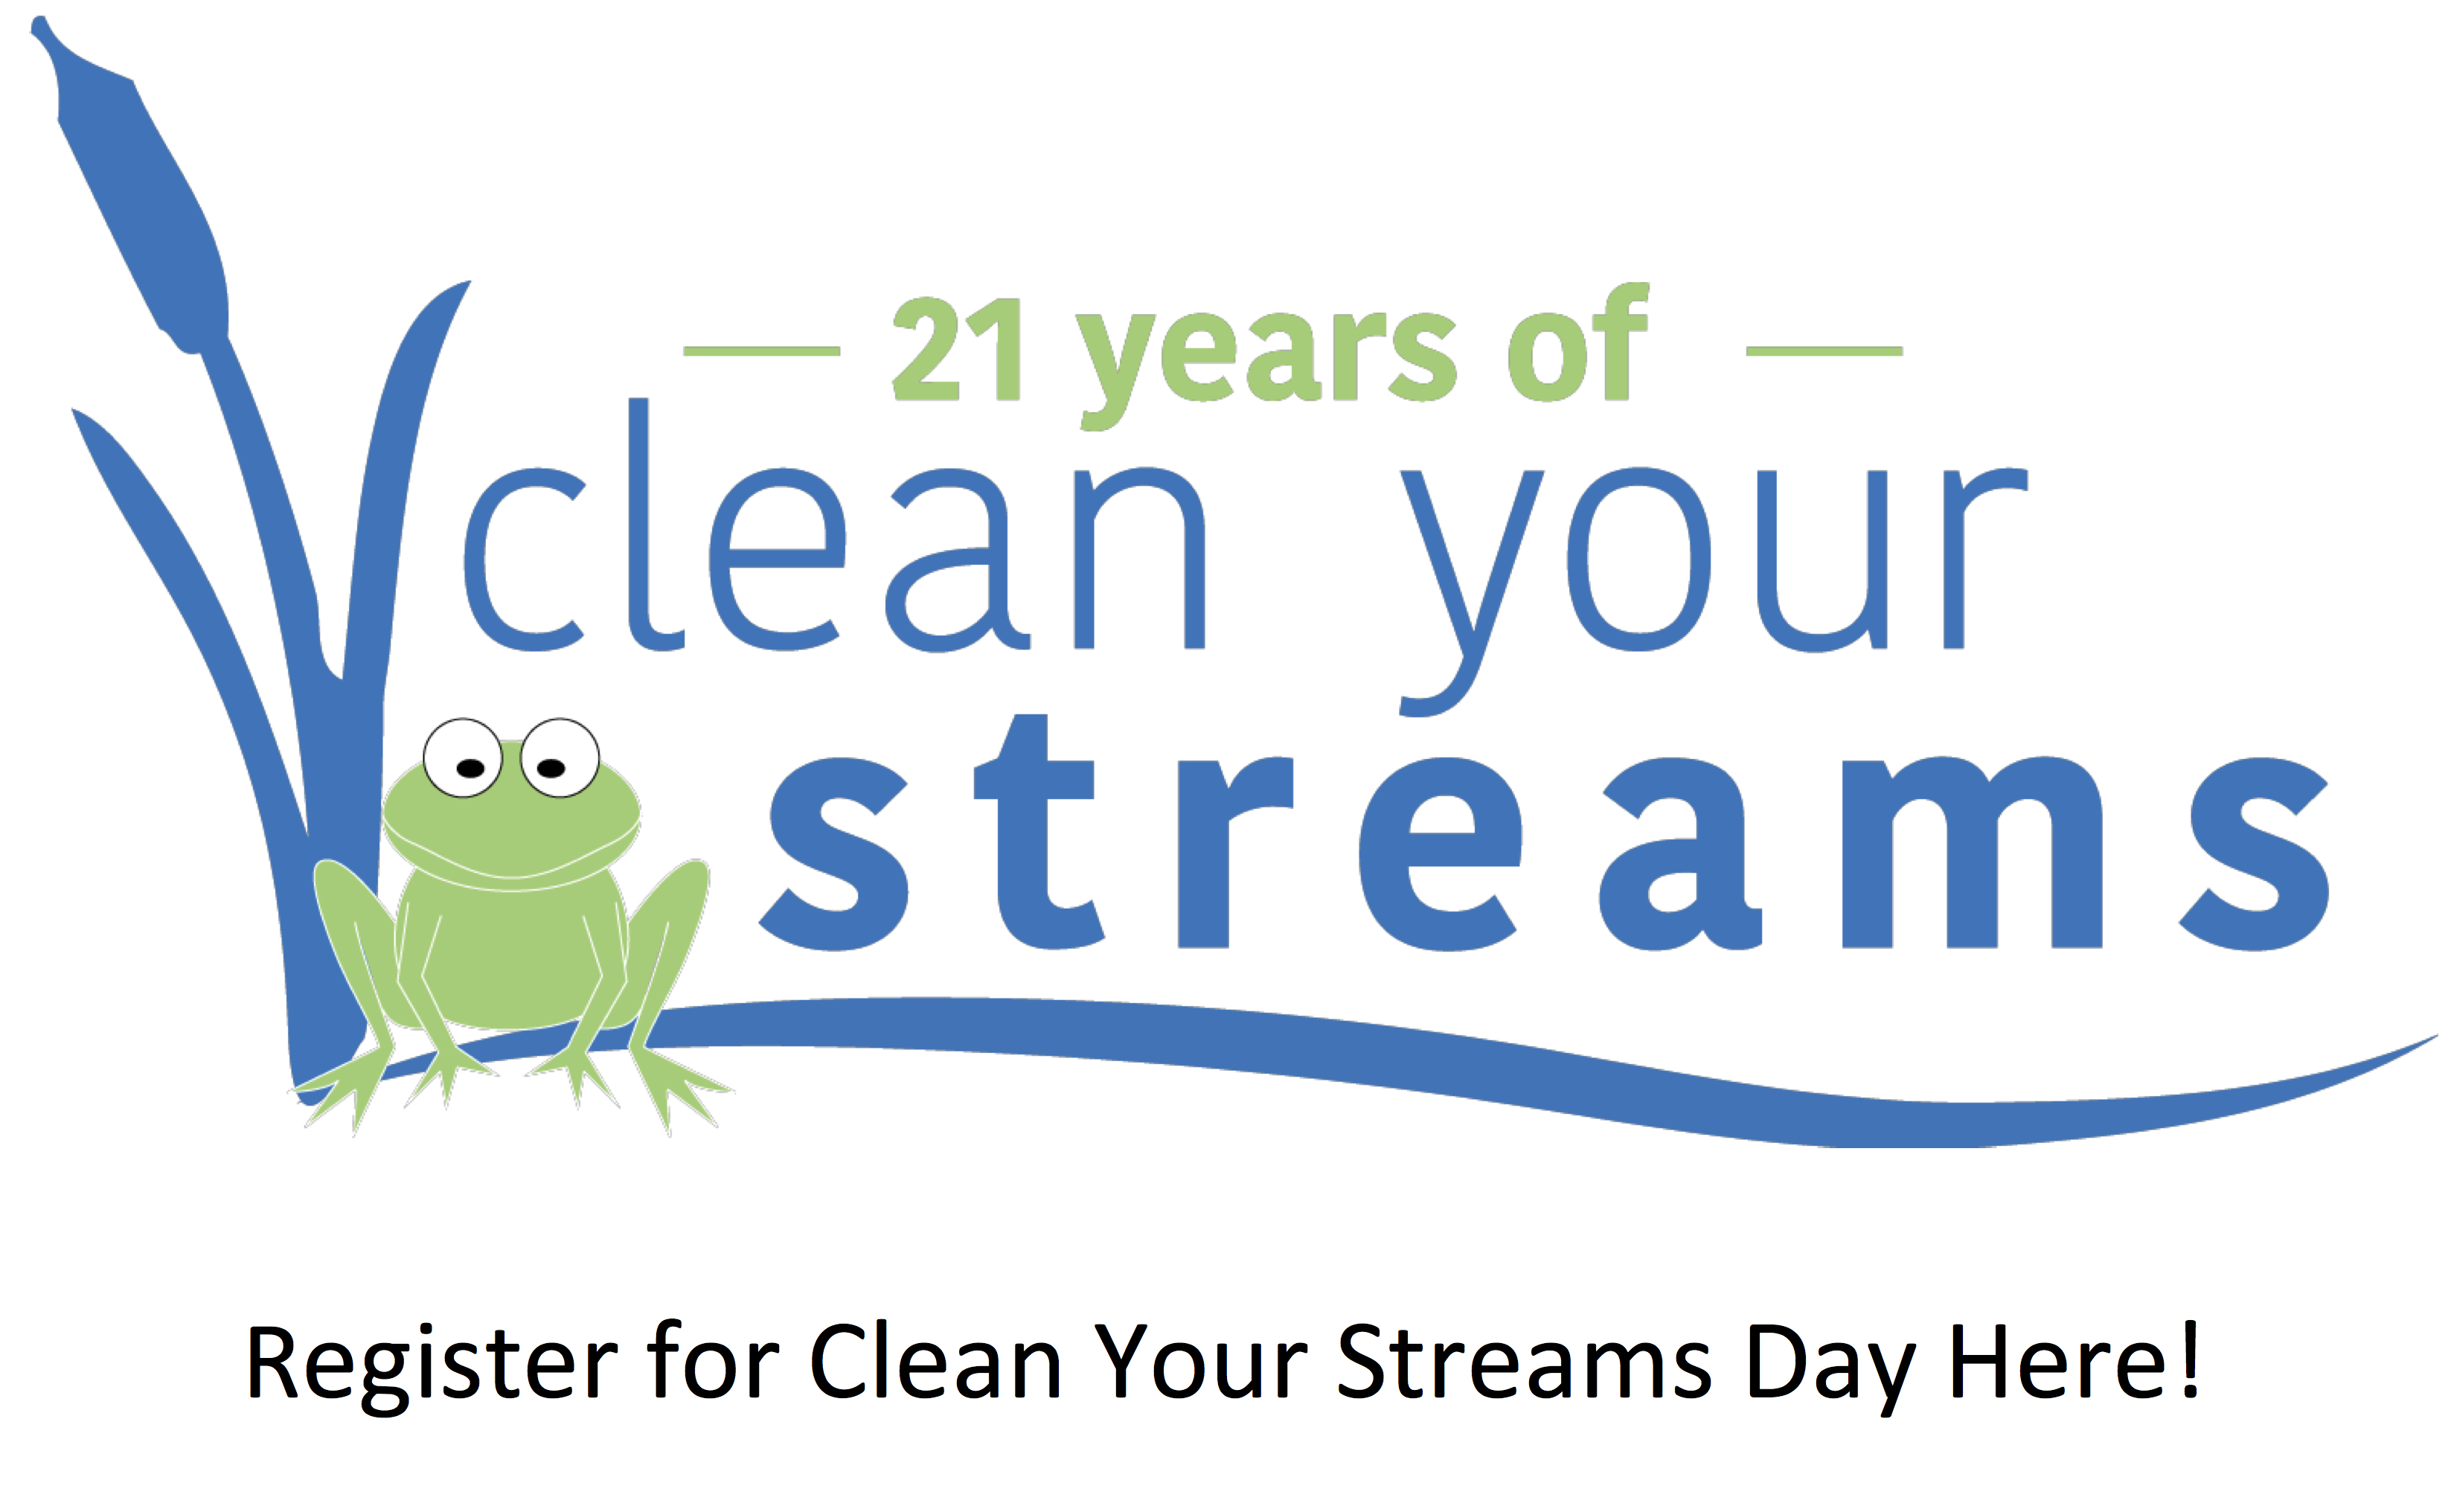 Register for Clean Your Streams Day Here